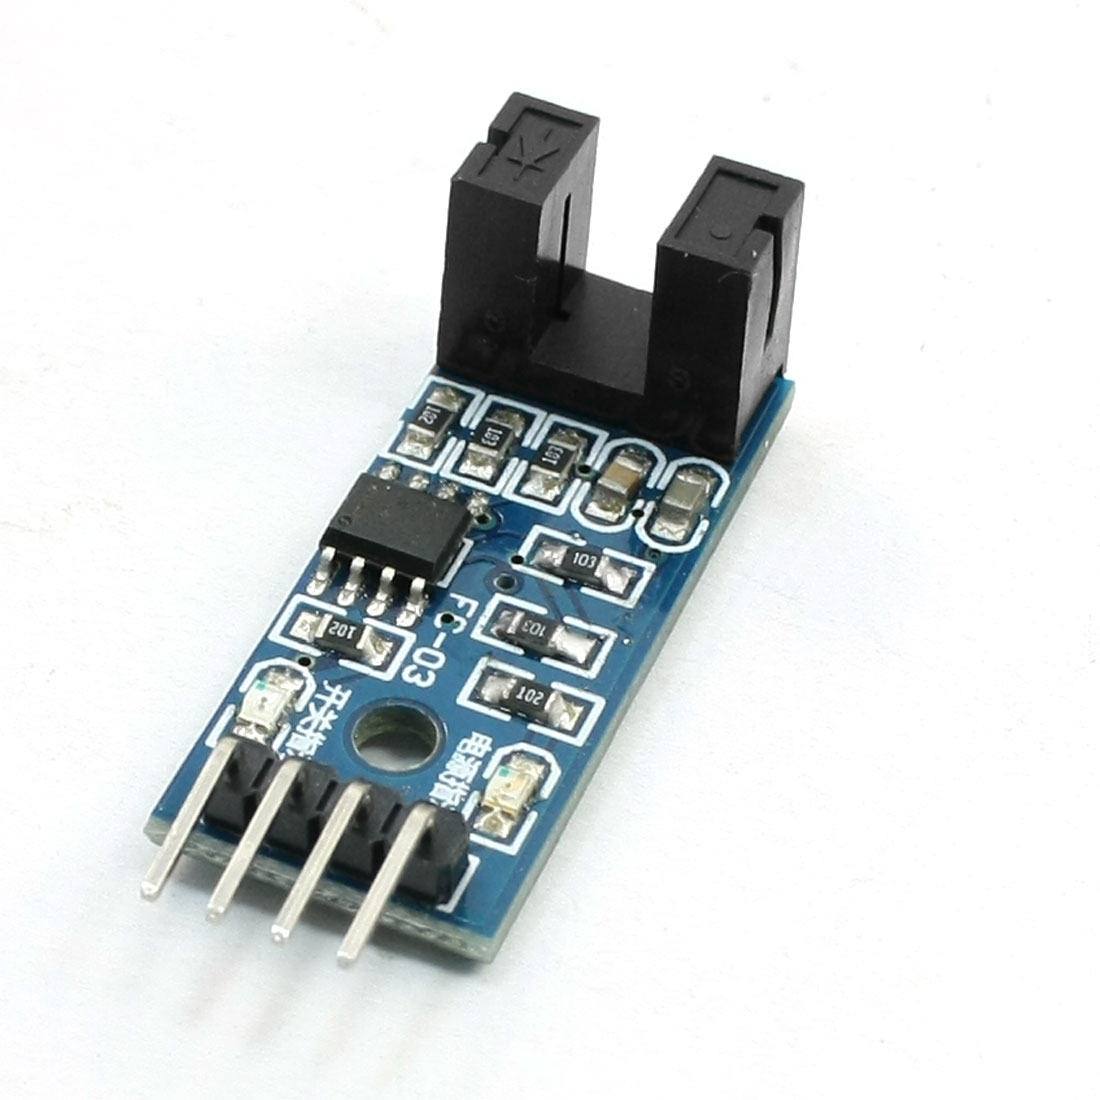 Speed Detection 4 Pin 1CH Velocity Measurement Sensor Module 3.3-5V